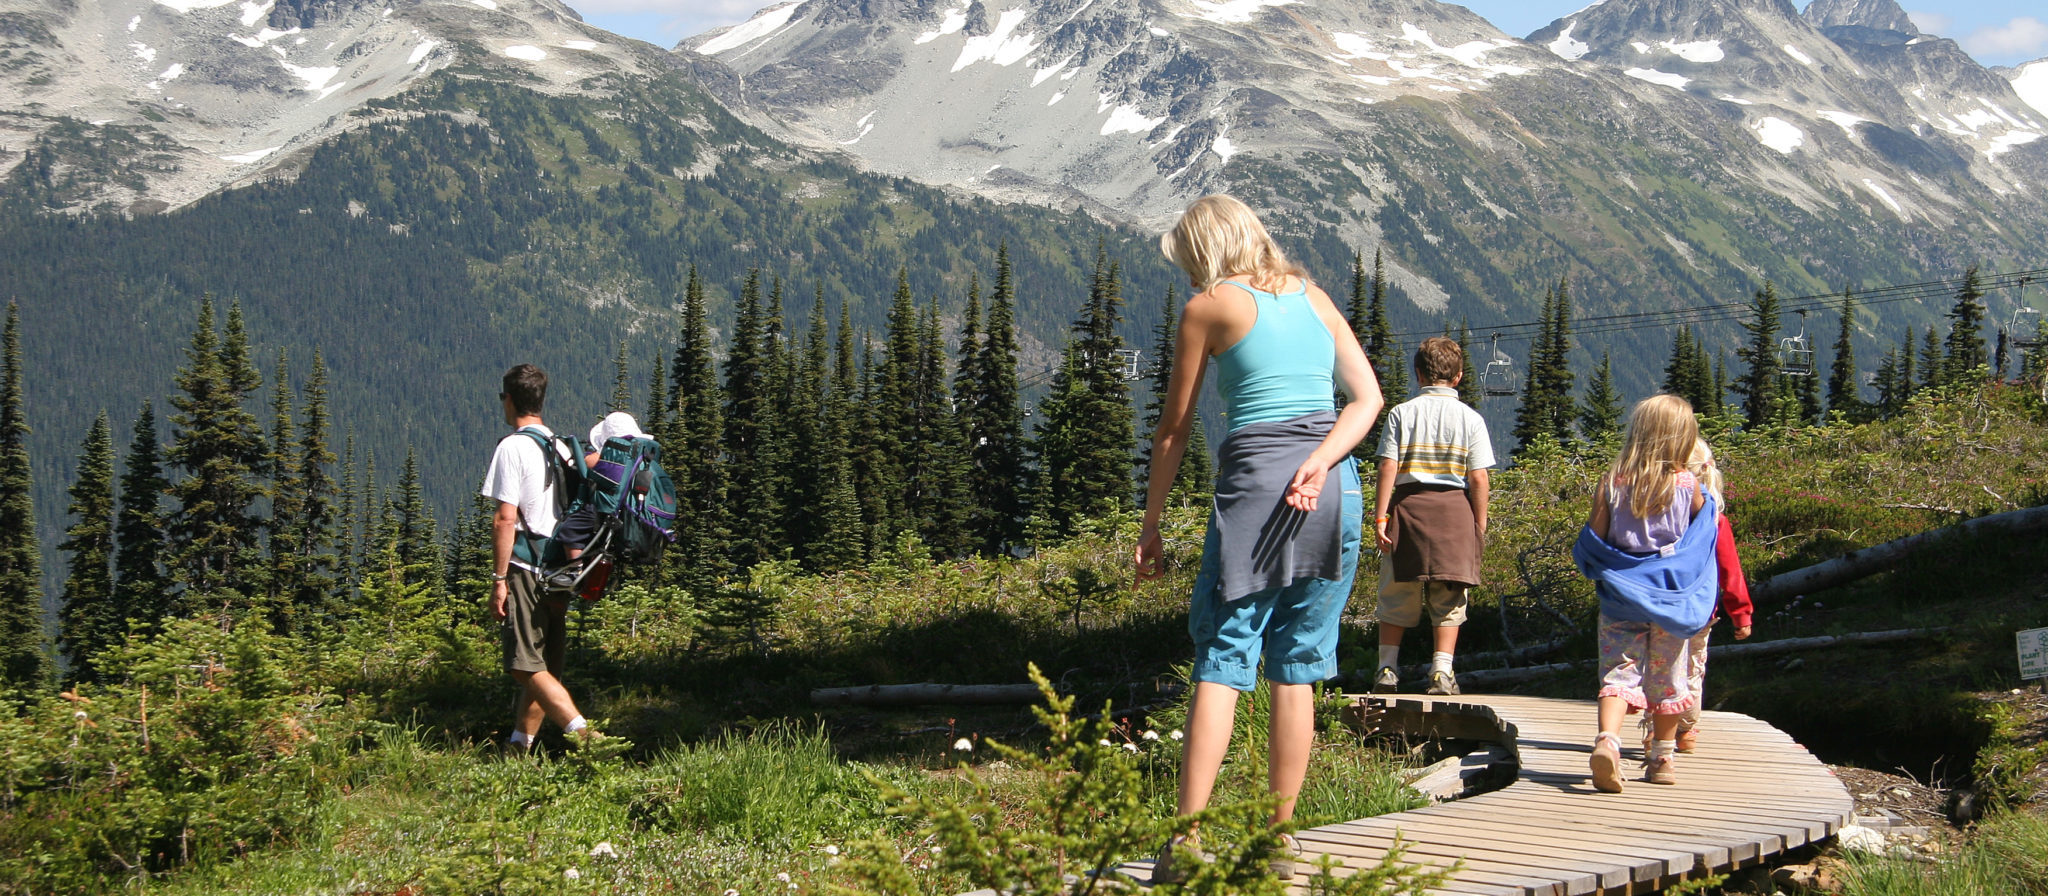 With the right gear and preparation, the whole family can enjoy an adventure in the great outdoors.